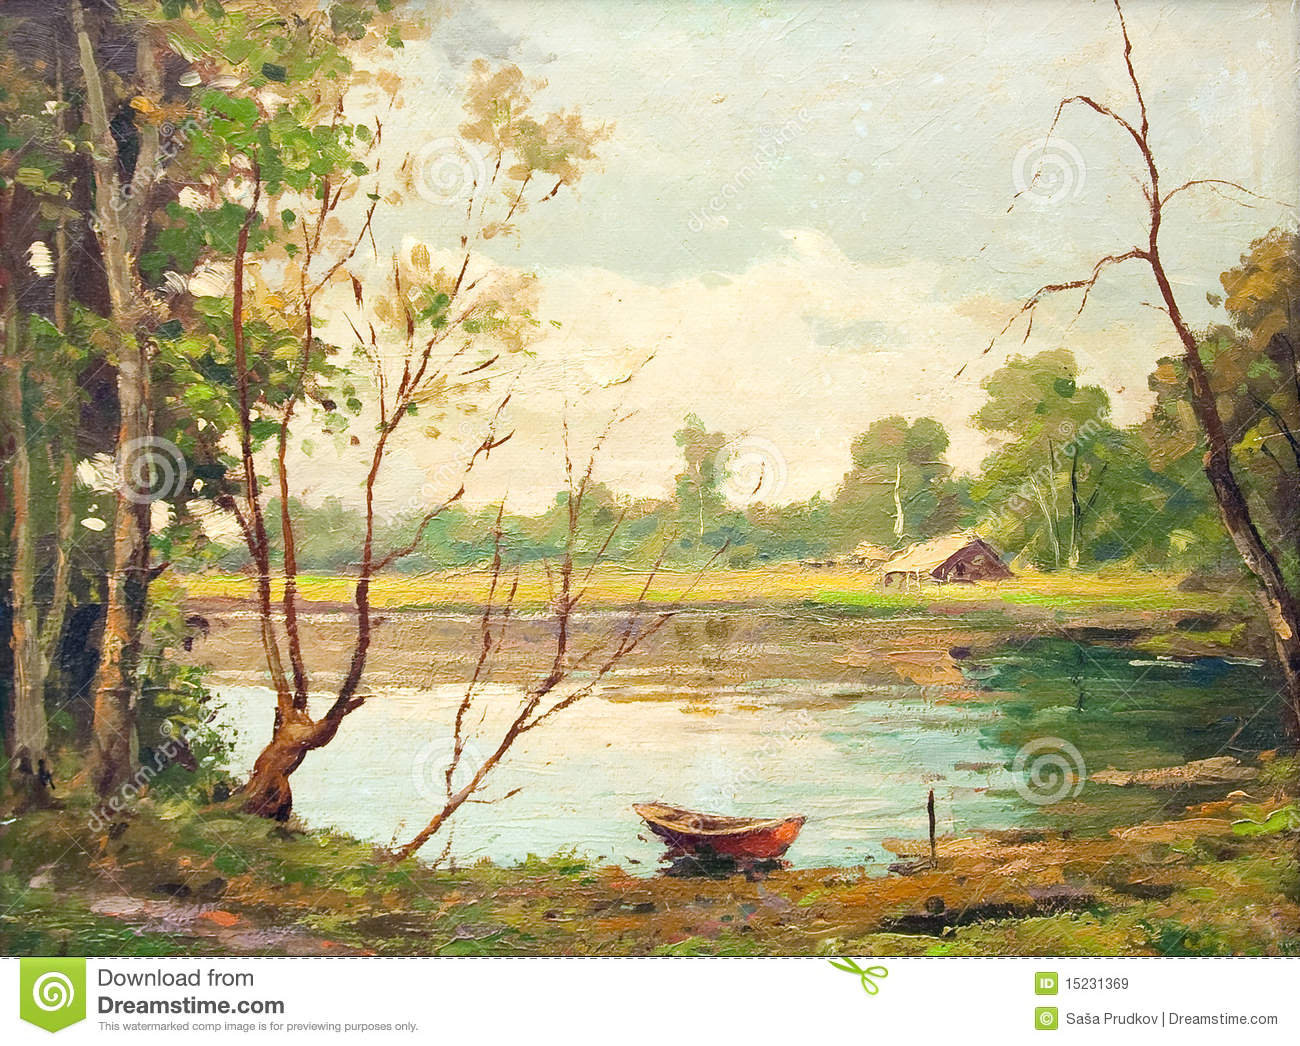 ... painting showing forest landscape, with boat, lake and a little house